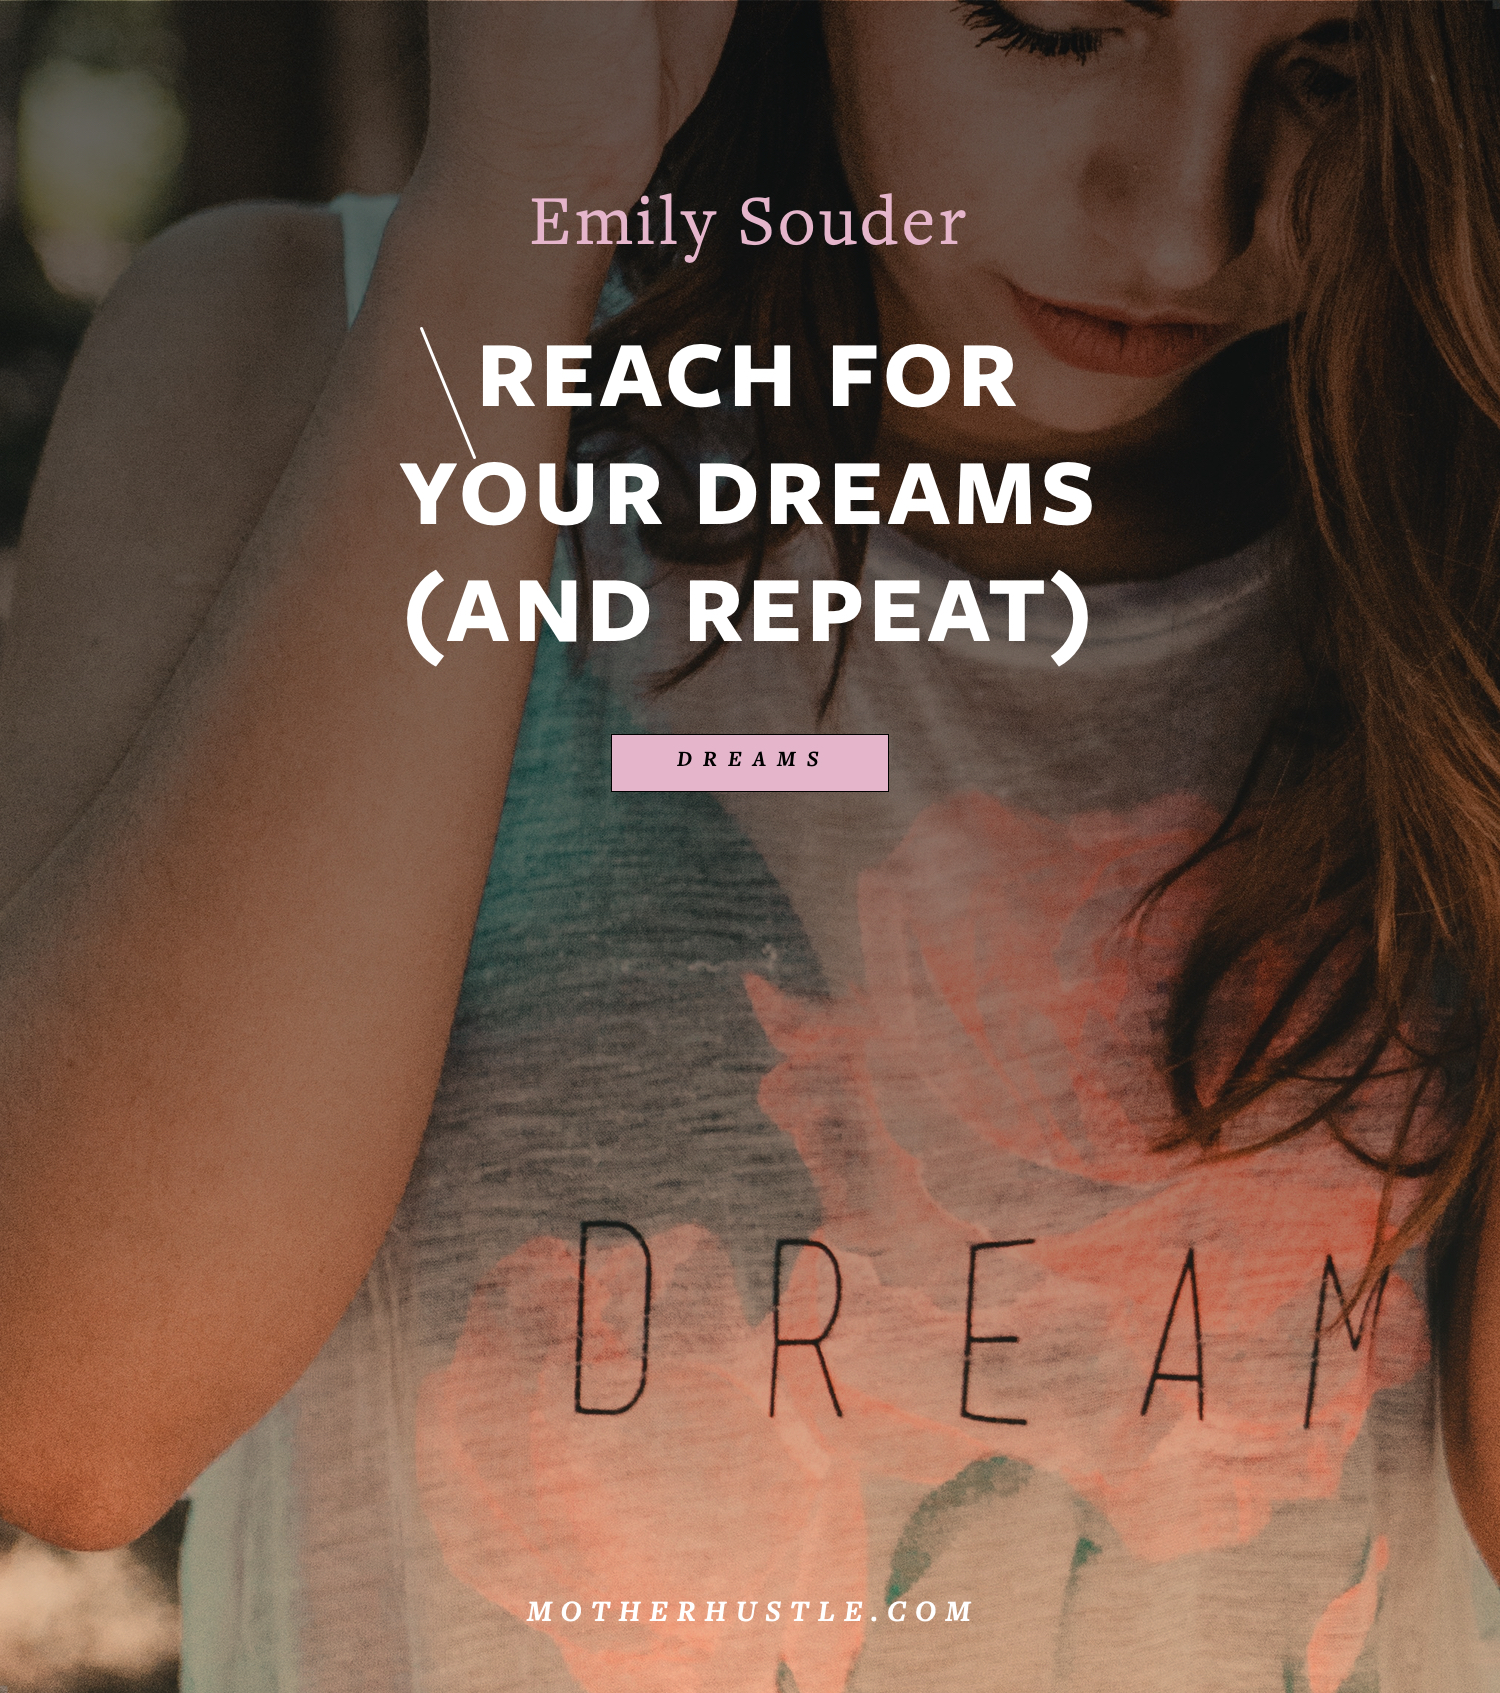 Reach for Your Dreams (And Repeat) - by Emily Souder for MotherHustle